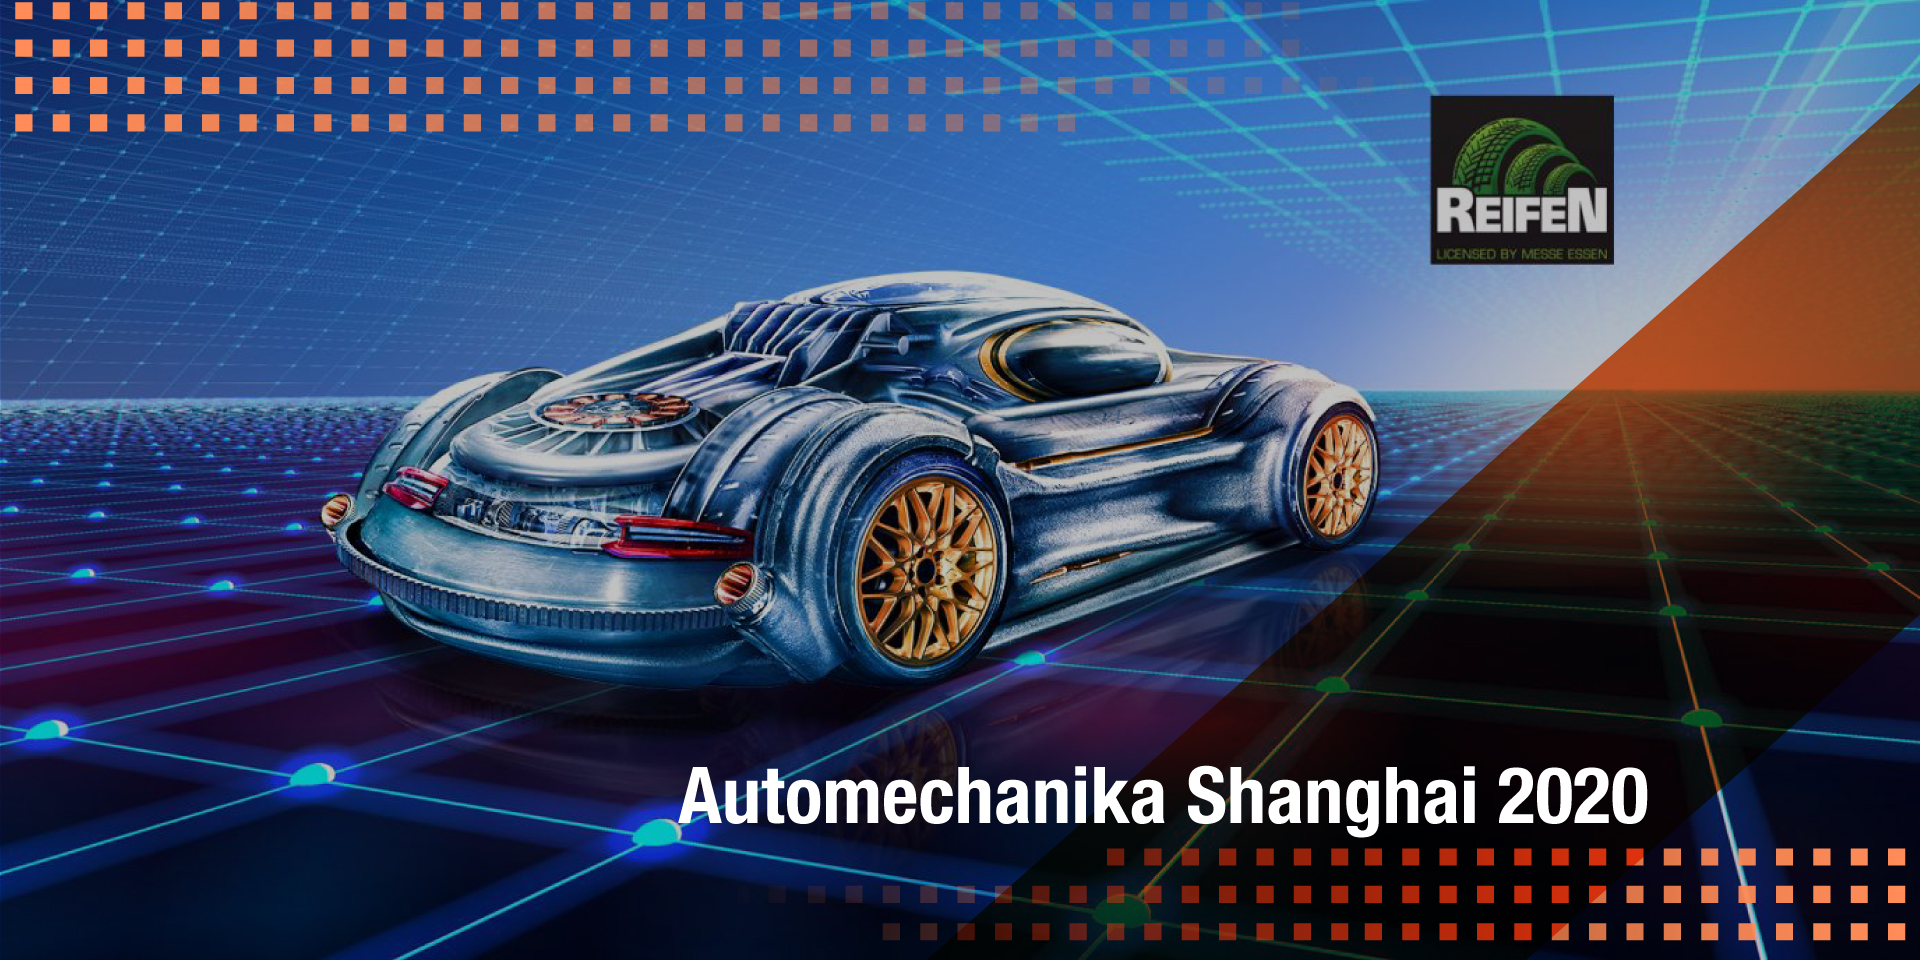 Automechanika Shanghai 2020